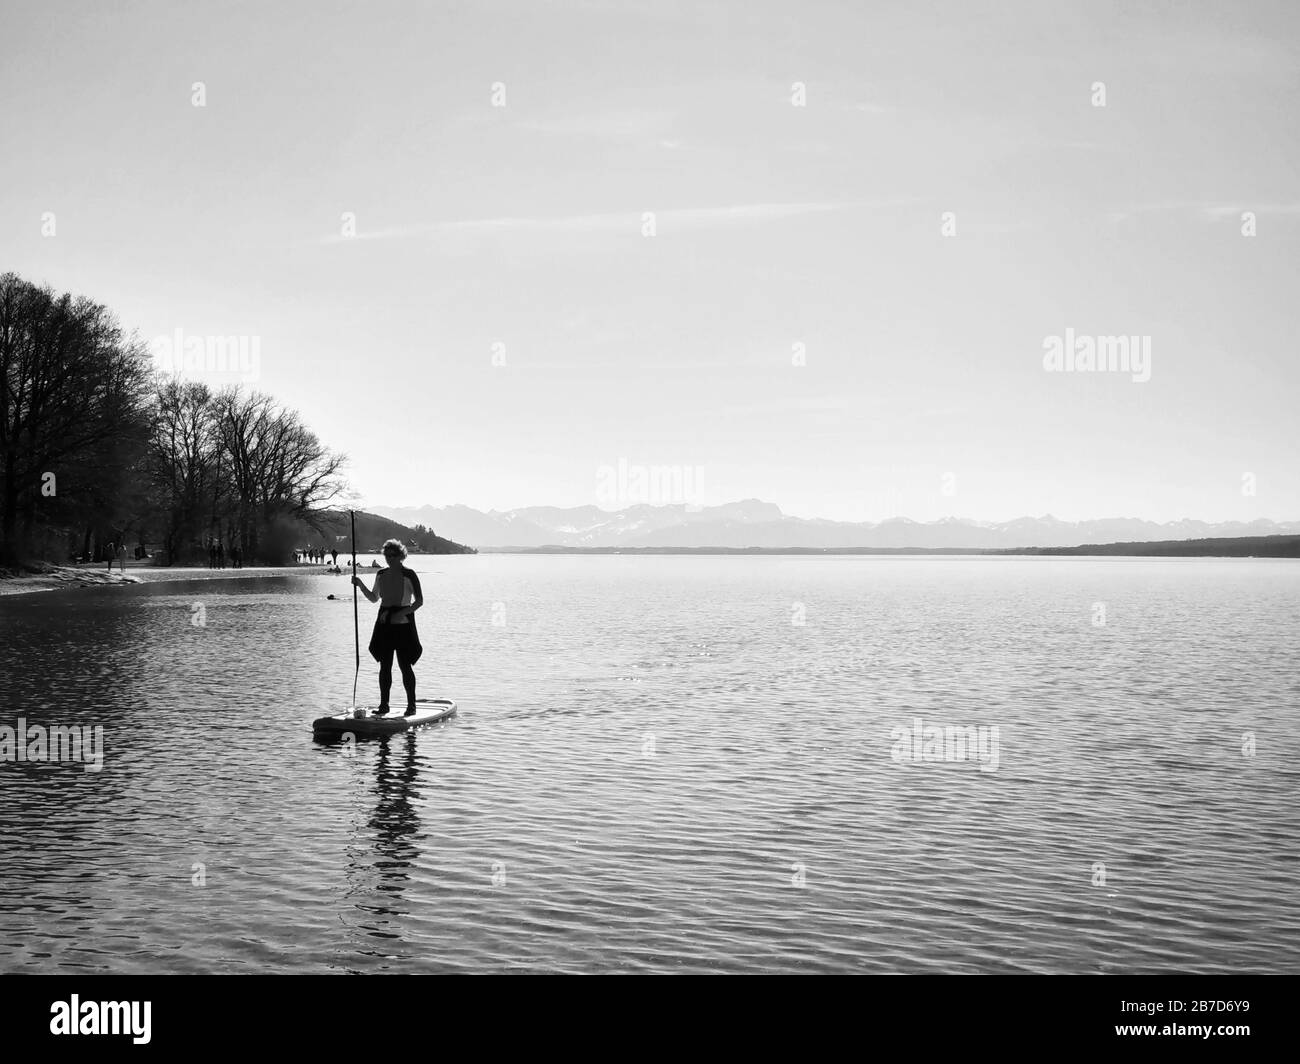 Starnberg, Bavaria, Germany. 15th Mar, 2020. A stand-up paddler on Lake Starnberg near Munich, Germany practices social distancing and flatten the curve during the European Coronavirus outbreak and subsequent measures taken to control the spread. Credit: Sachelle Babbar/ZUMA Wire/Alamy Live News Stock Photo